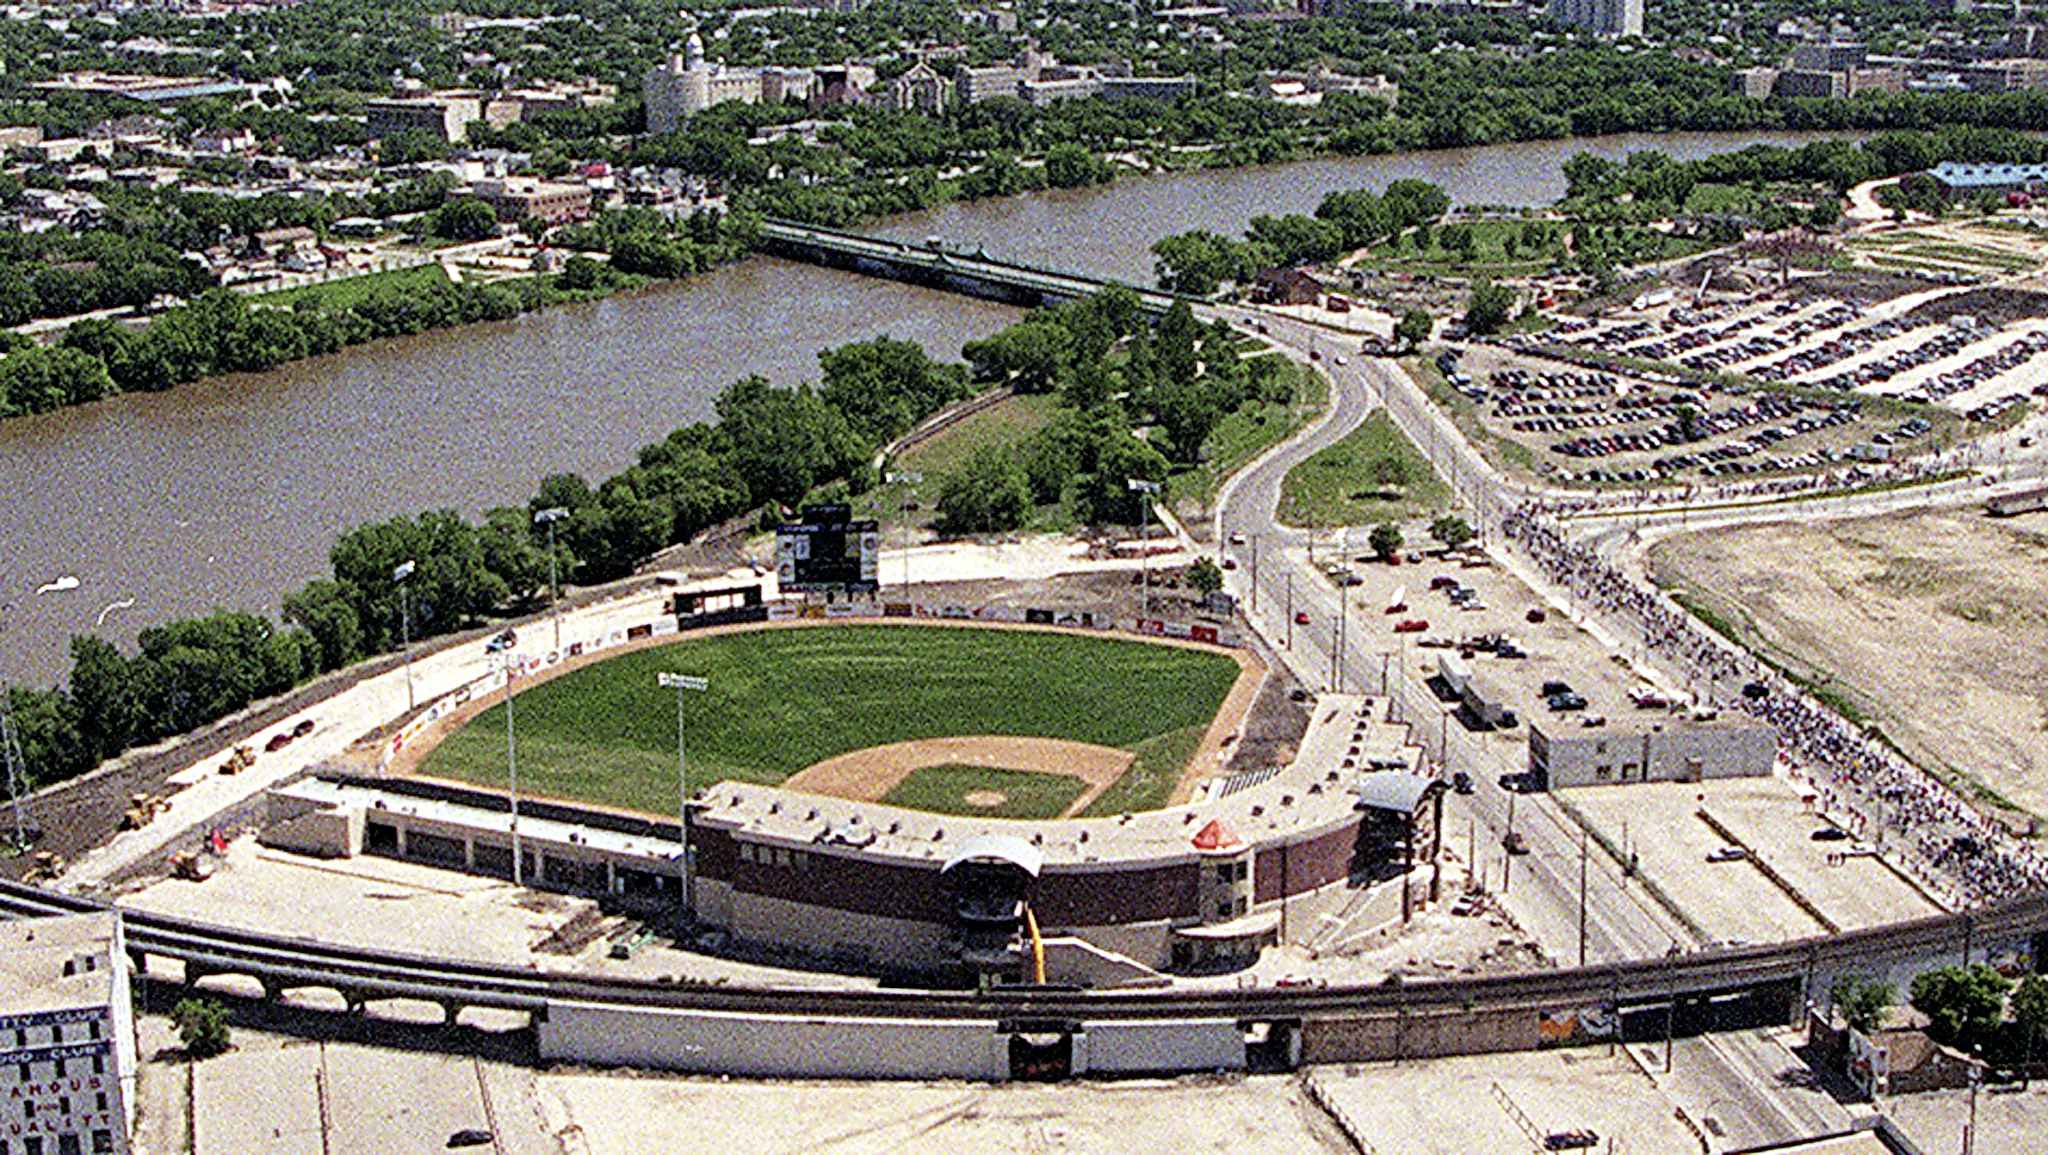 The Goldeyes' newly-completed ballpark at the Forks in downtown Winnipeg was built in 1999 for $20M.